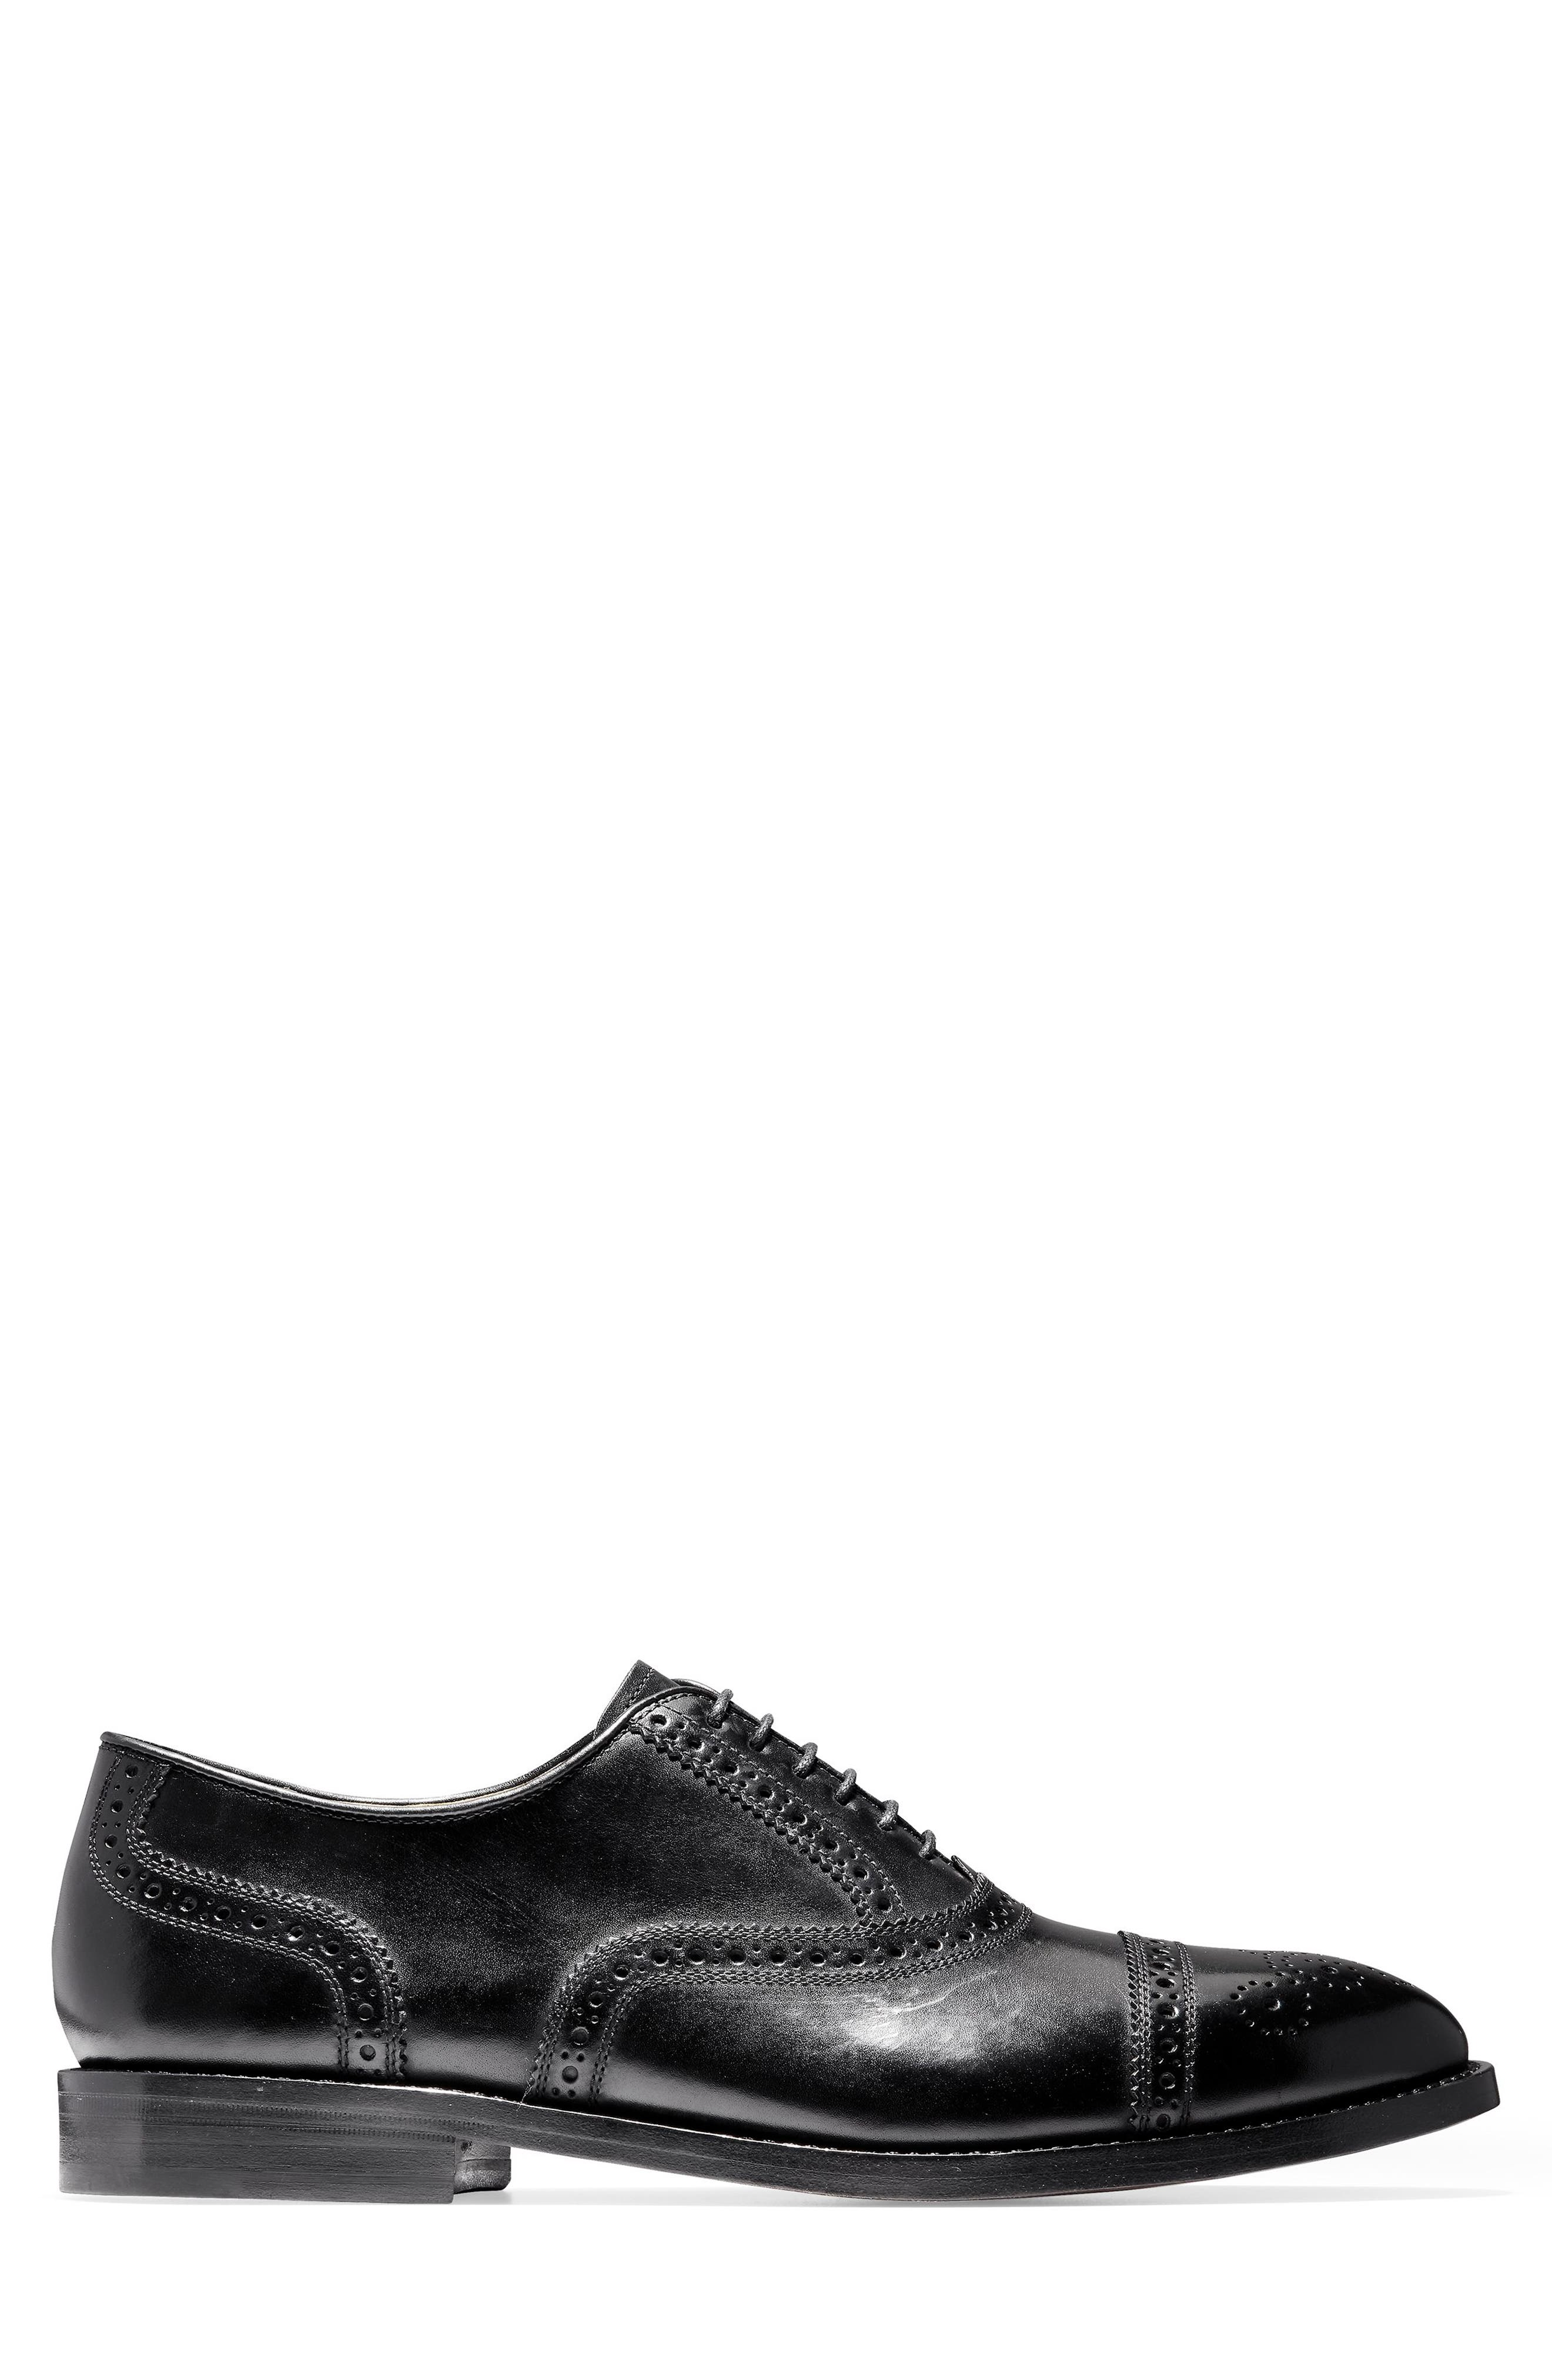 American Classics Kneeland Cap Toe Oxford,                             Alternate thumbnail 3, color,                             BLACK LEATHER